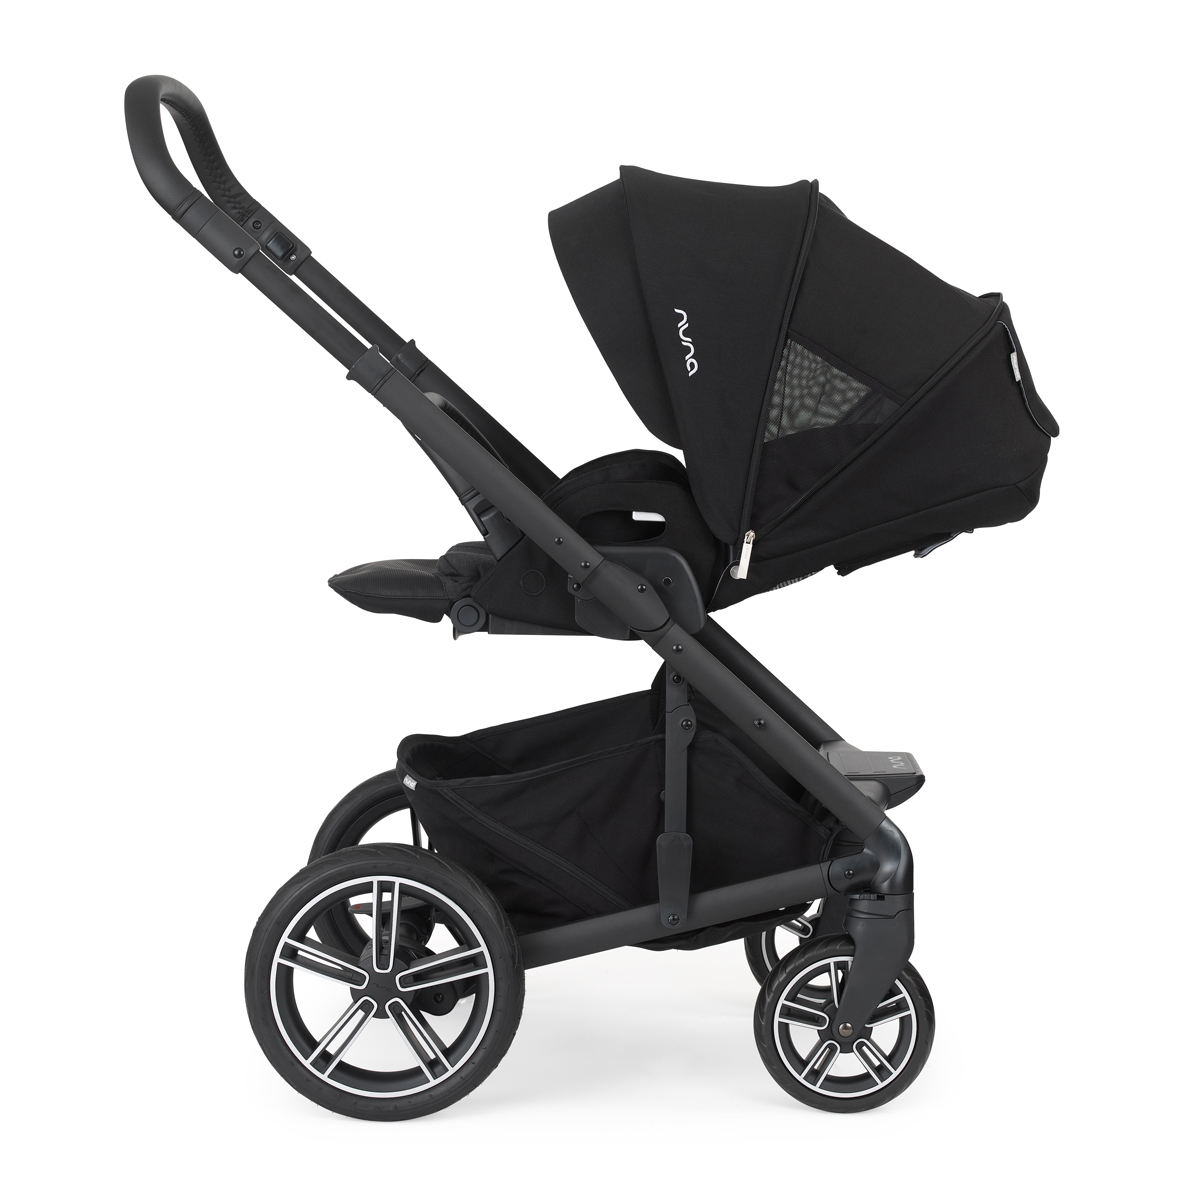 Buy Graco LiteRider Click Connect Travel System Stroller, with SnugRide Click Connect 22 Infant Car Seat, Priscilla at mixedforms.ml